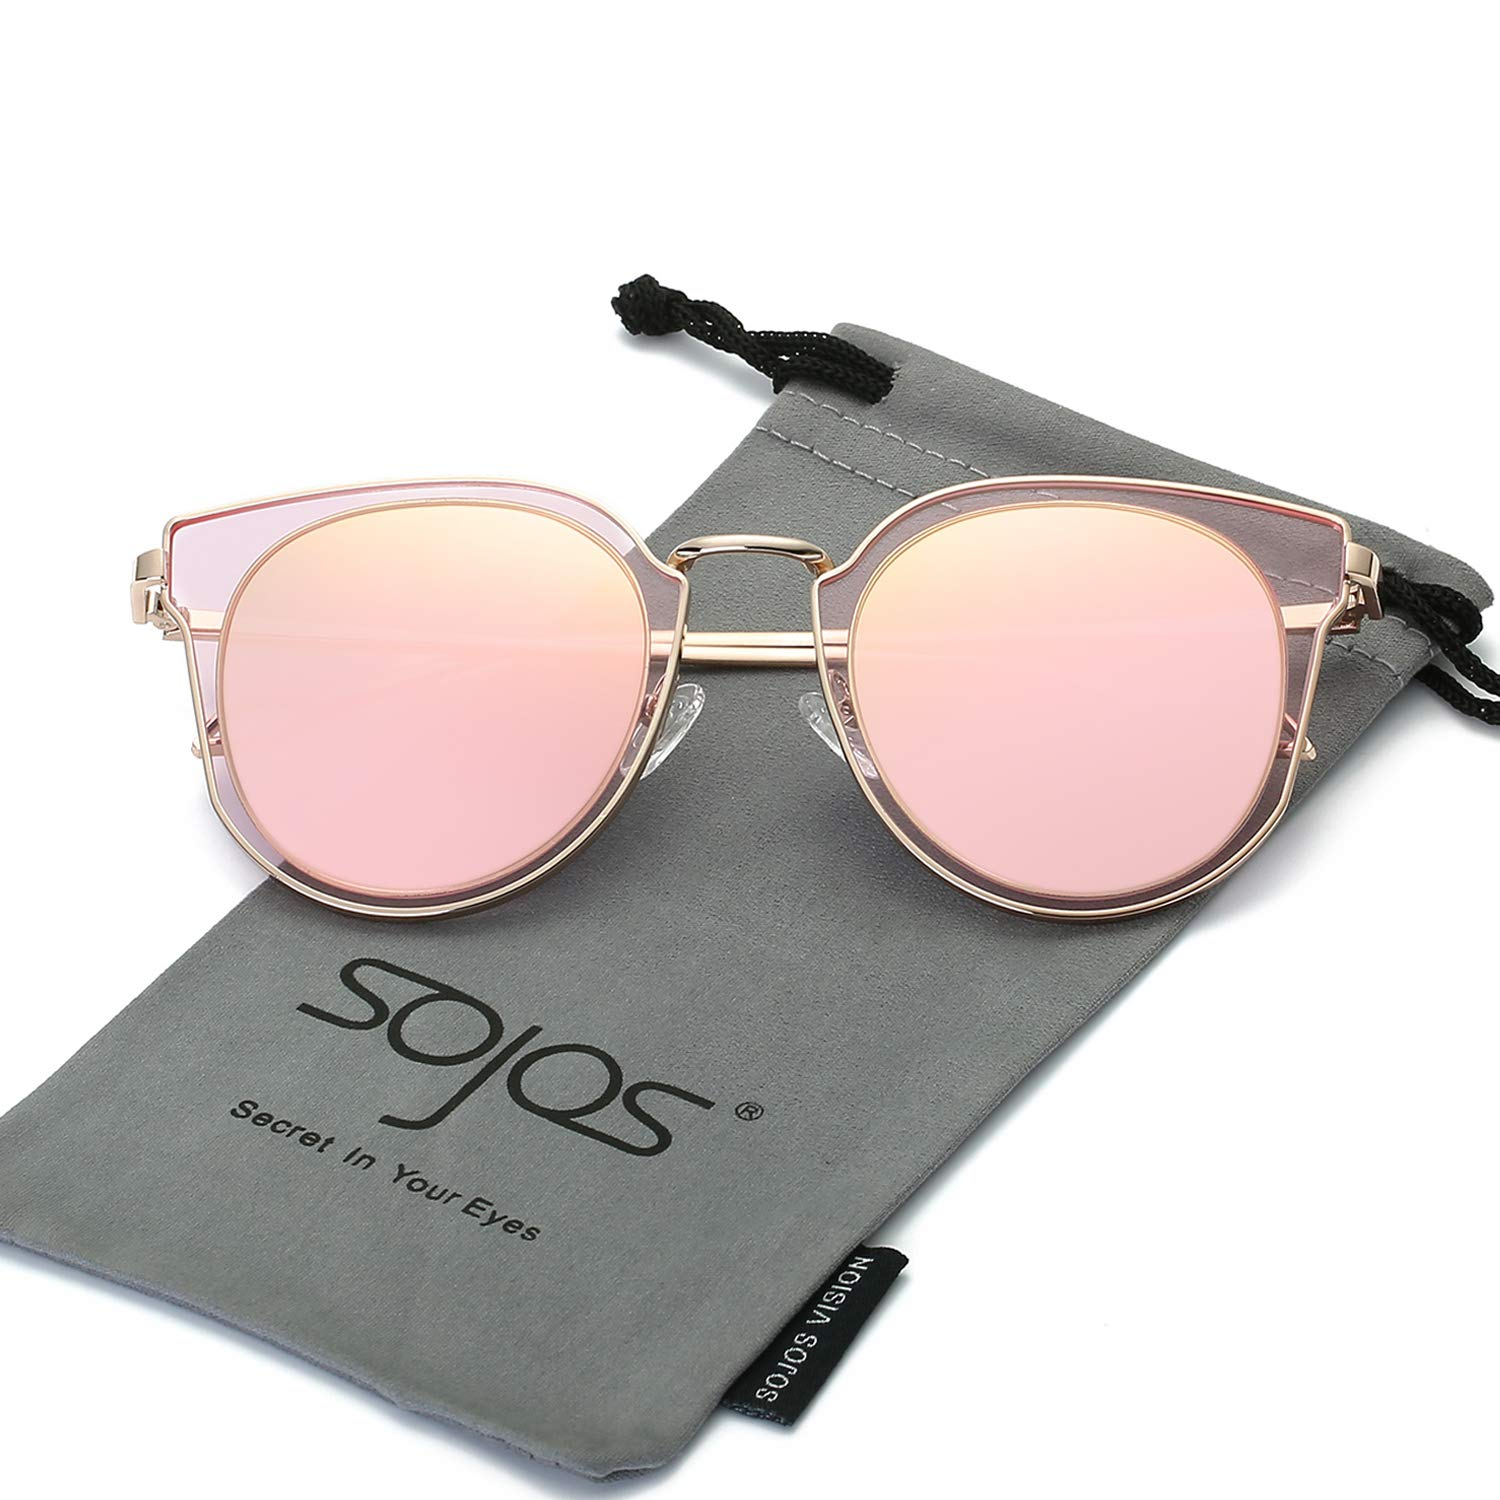 SOJOS Fashion Polarized Sunglasses for Women UV400 Mirrored Lens SJ1057 with Rose Gold Frame/Pink Mirrored Lens